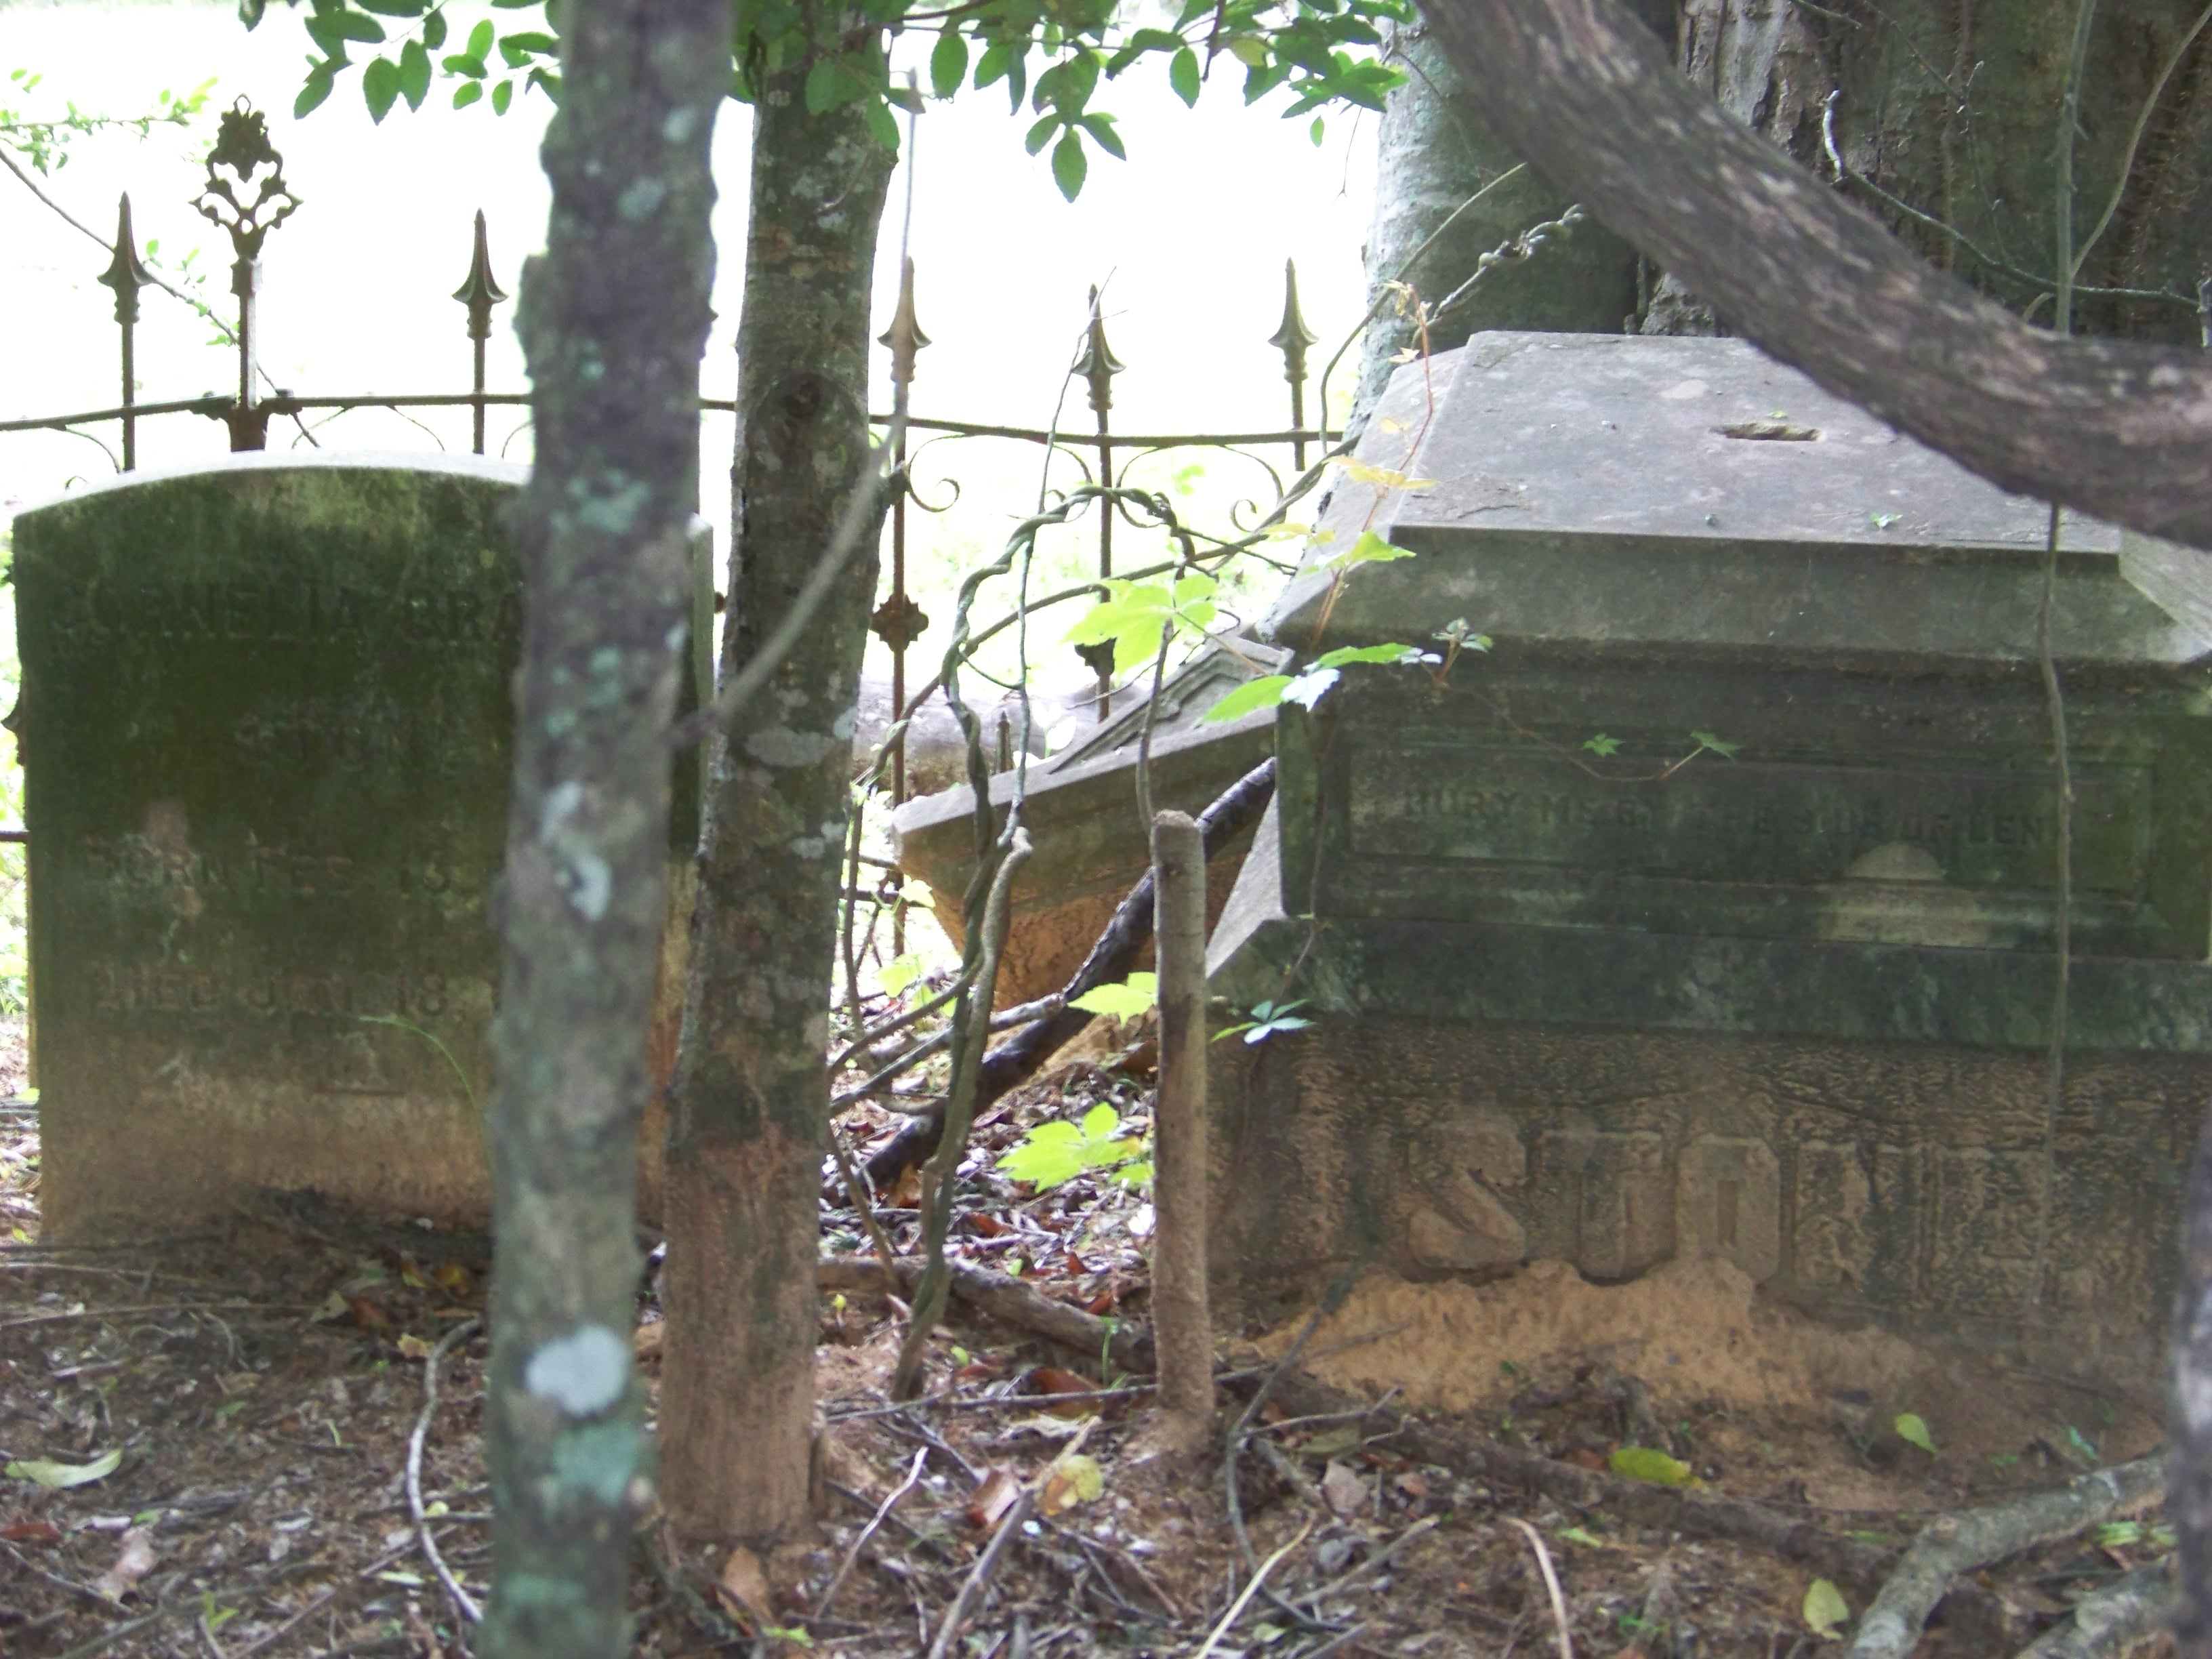 Legal Battle Looming Over Access To Historic Liberty Cemetery